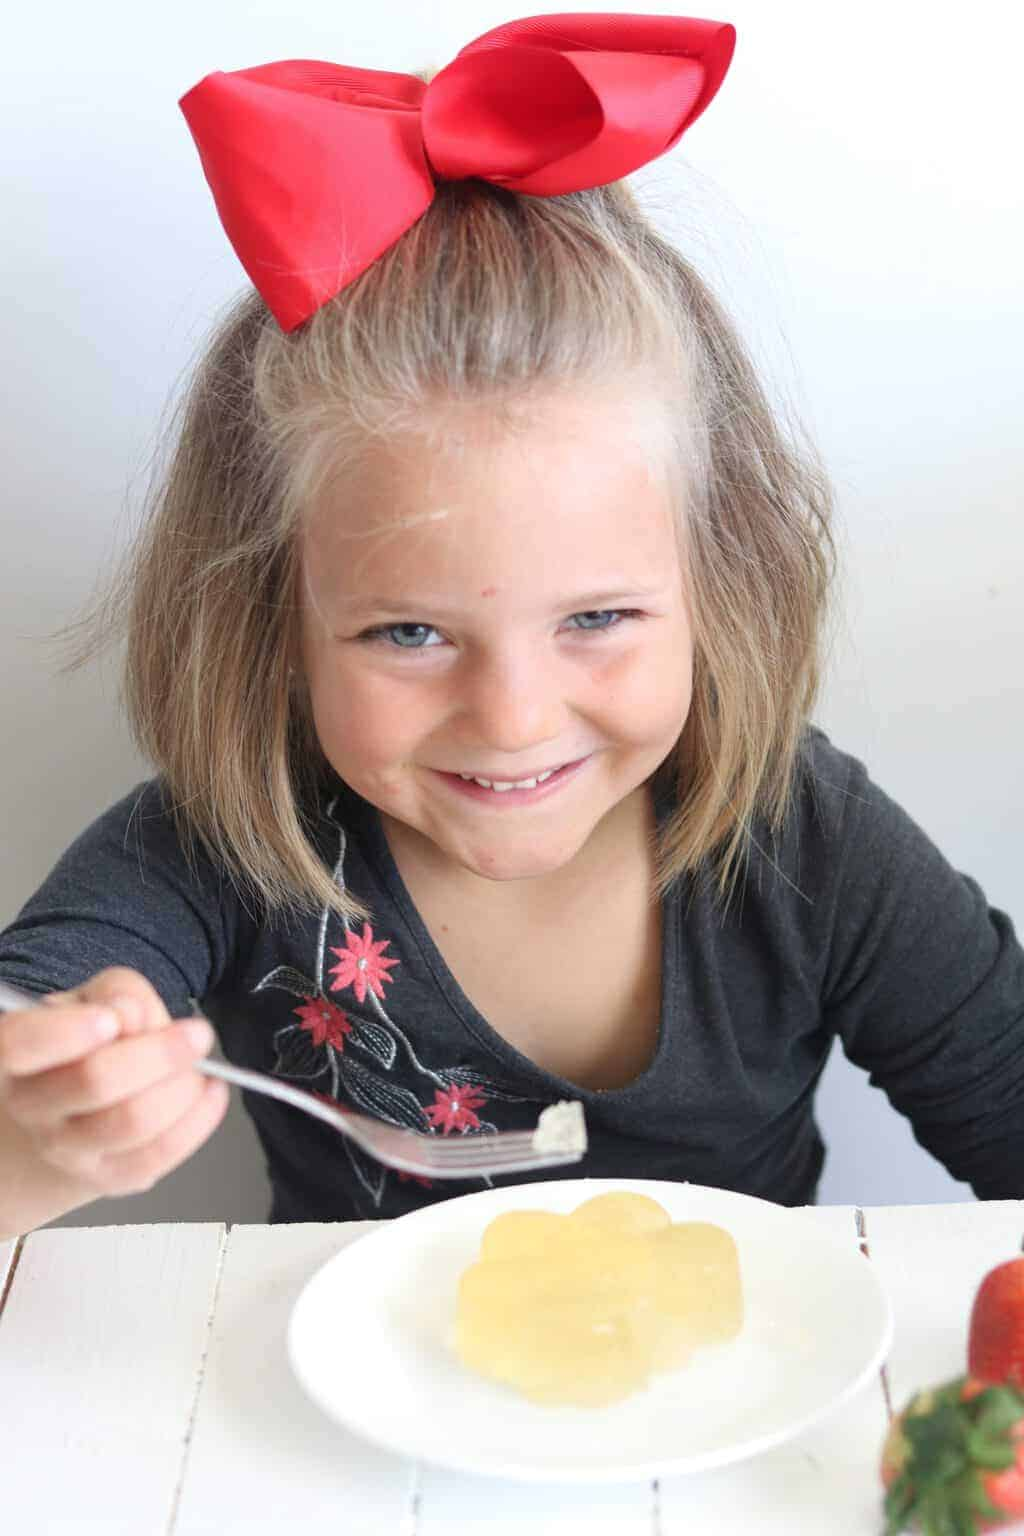 Kid approved organic jello that is made with all natural ingredients.